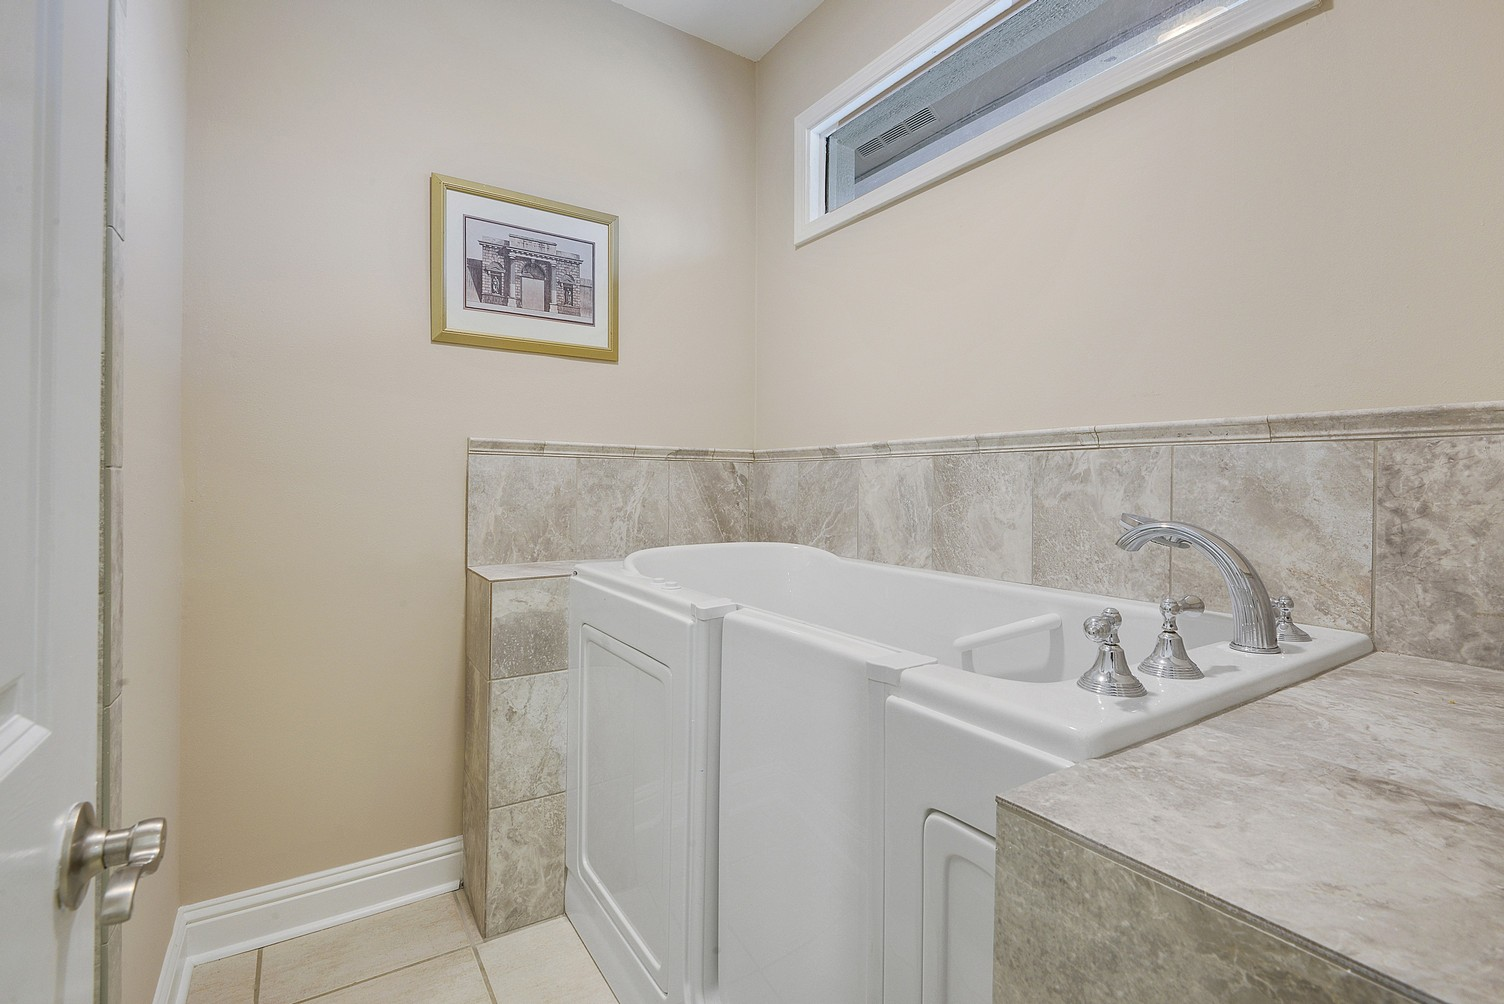 Aging in place remodeling contractor baton rouge la Bathroom remodel with walk in tub